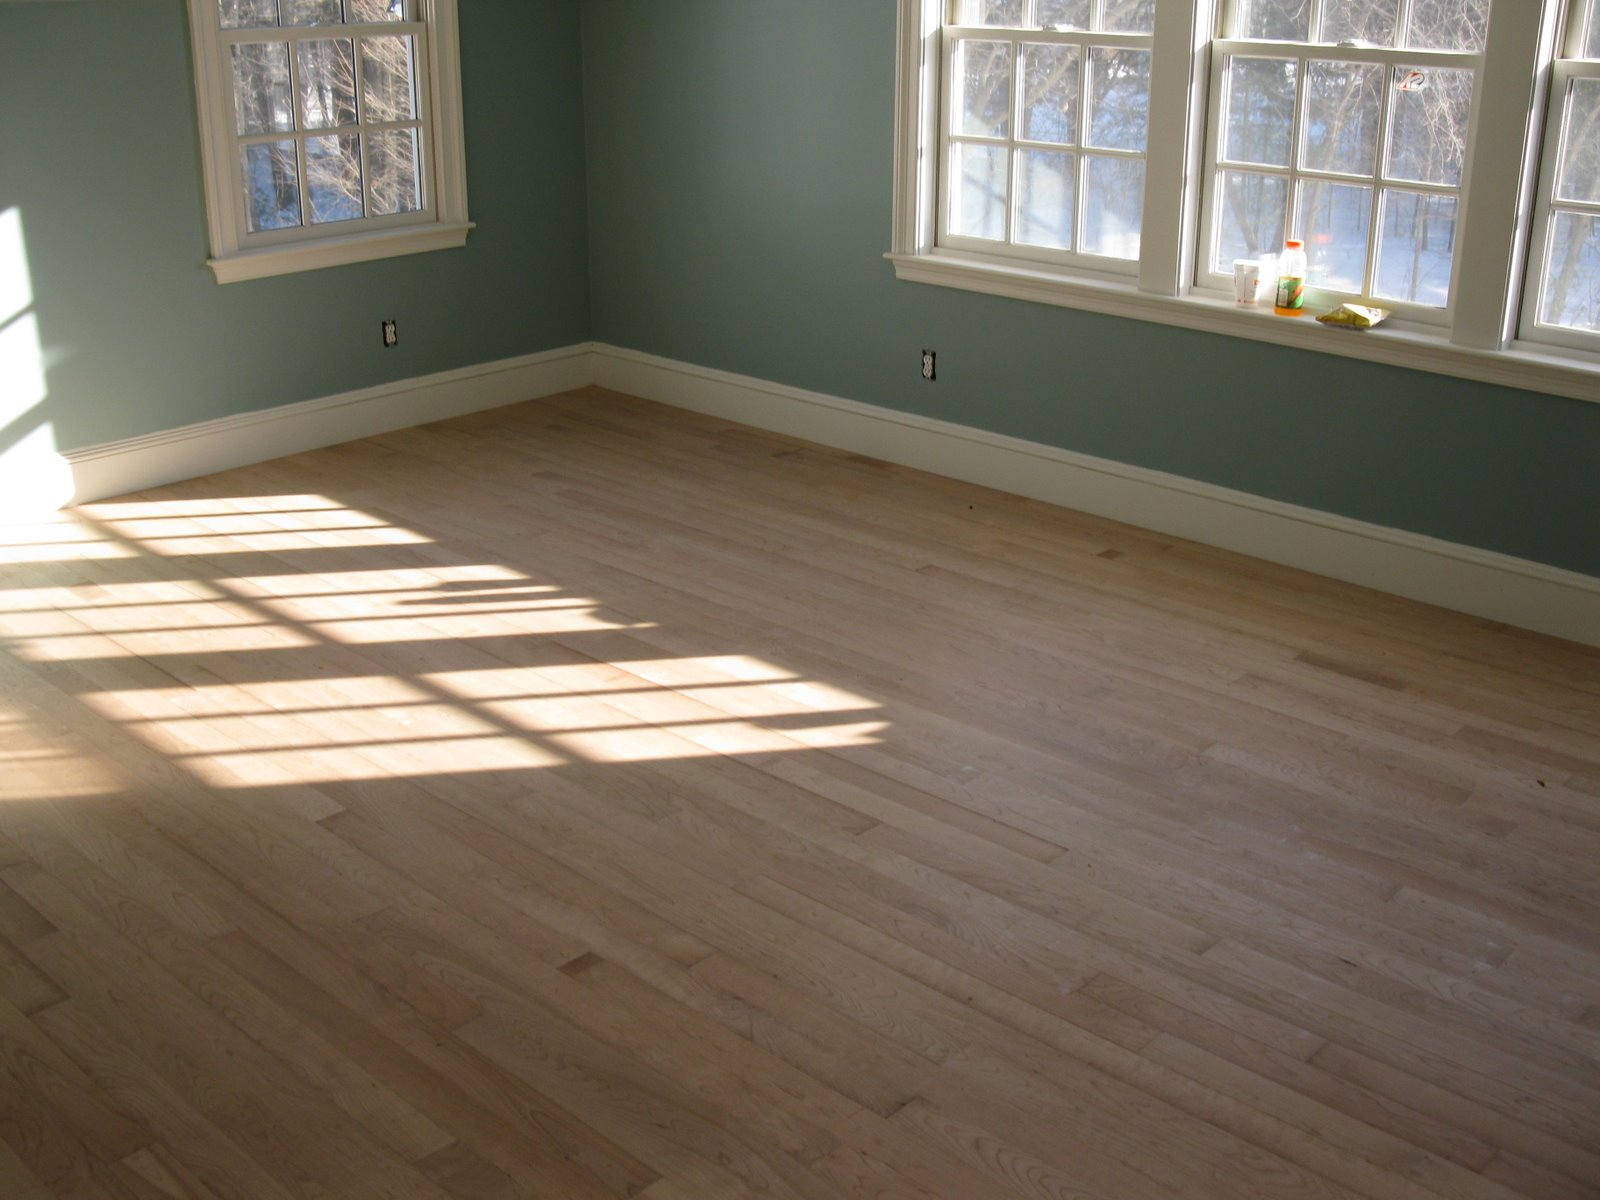 Installing cherry hardwood flooring a concord carpenter for Laying hardwood floors